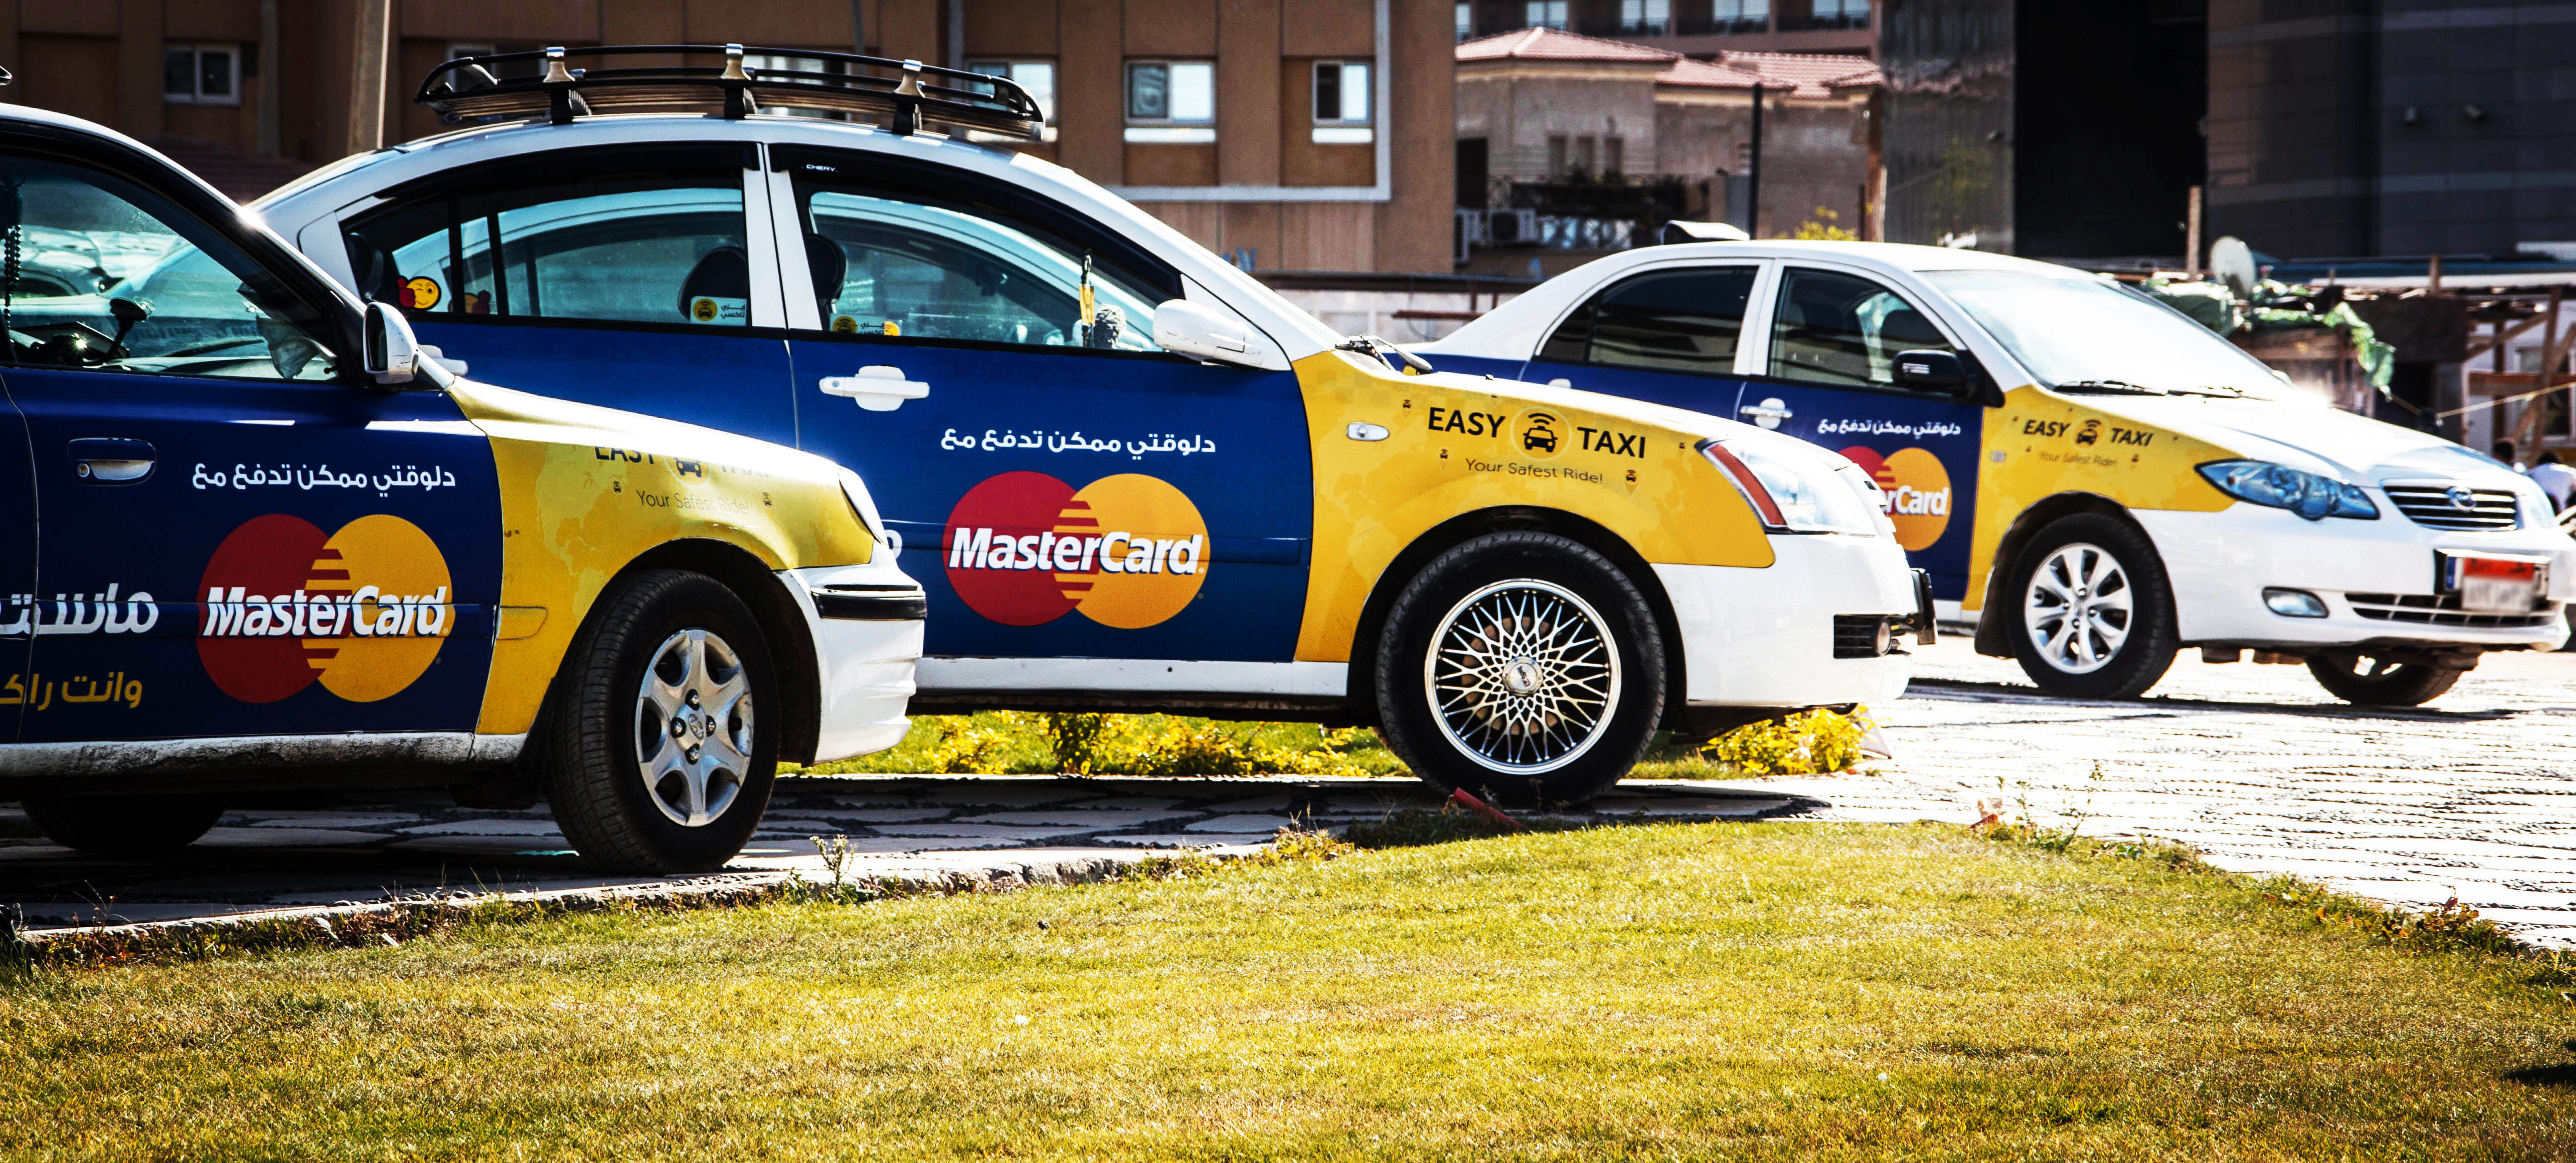 Easy Taxi cars with Mastercard on them